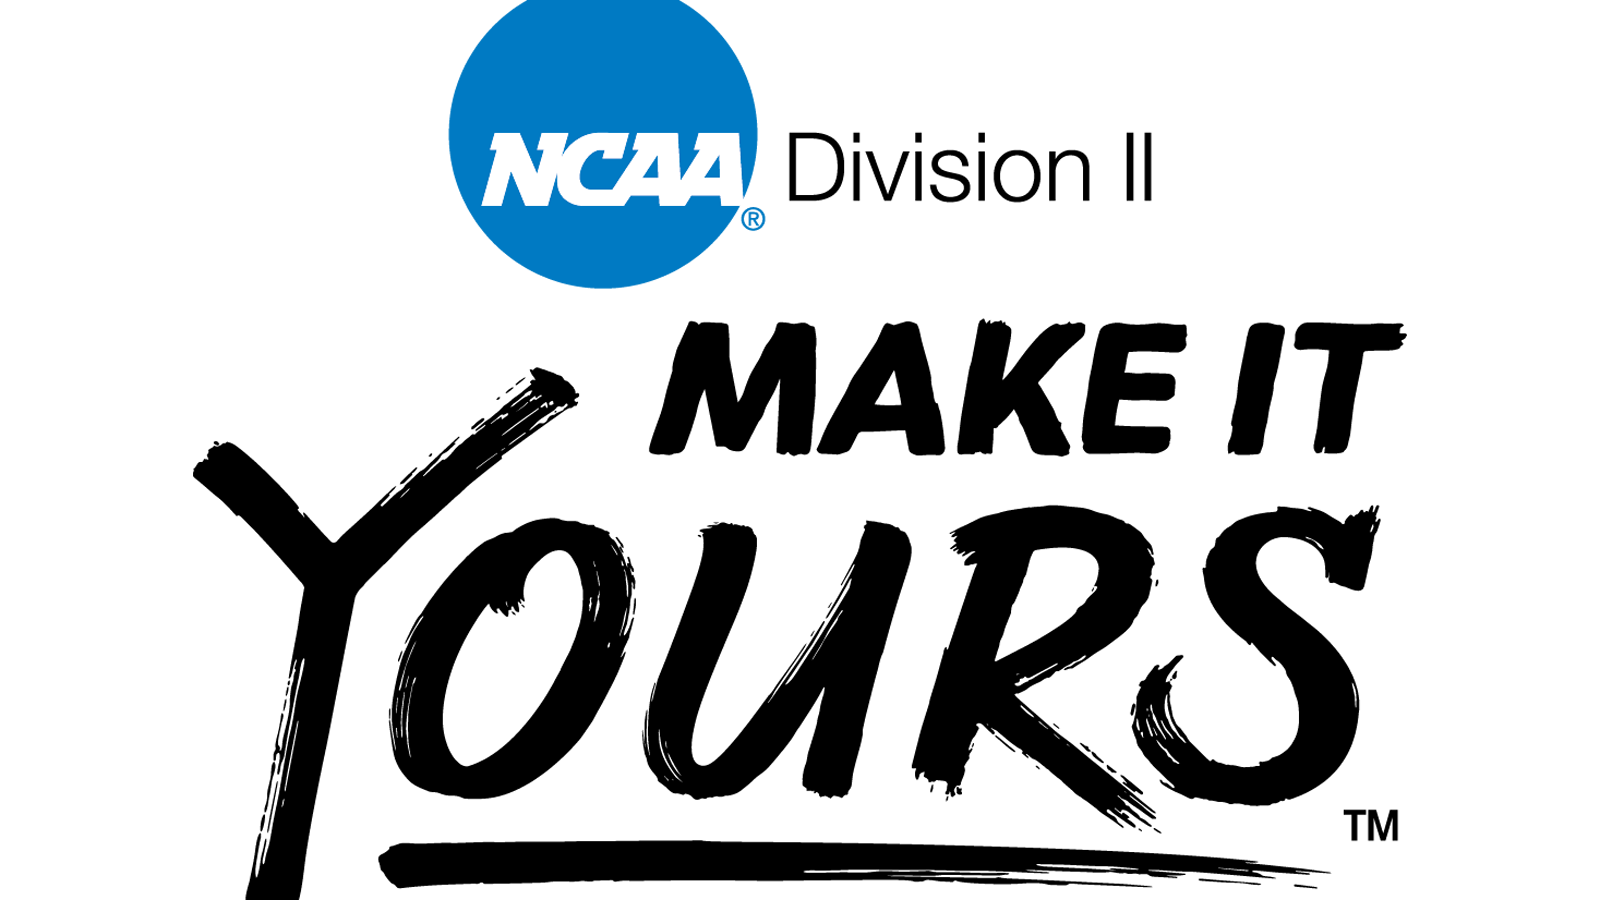 Make a png logo. Division ii begins rollout